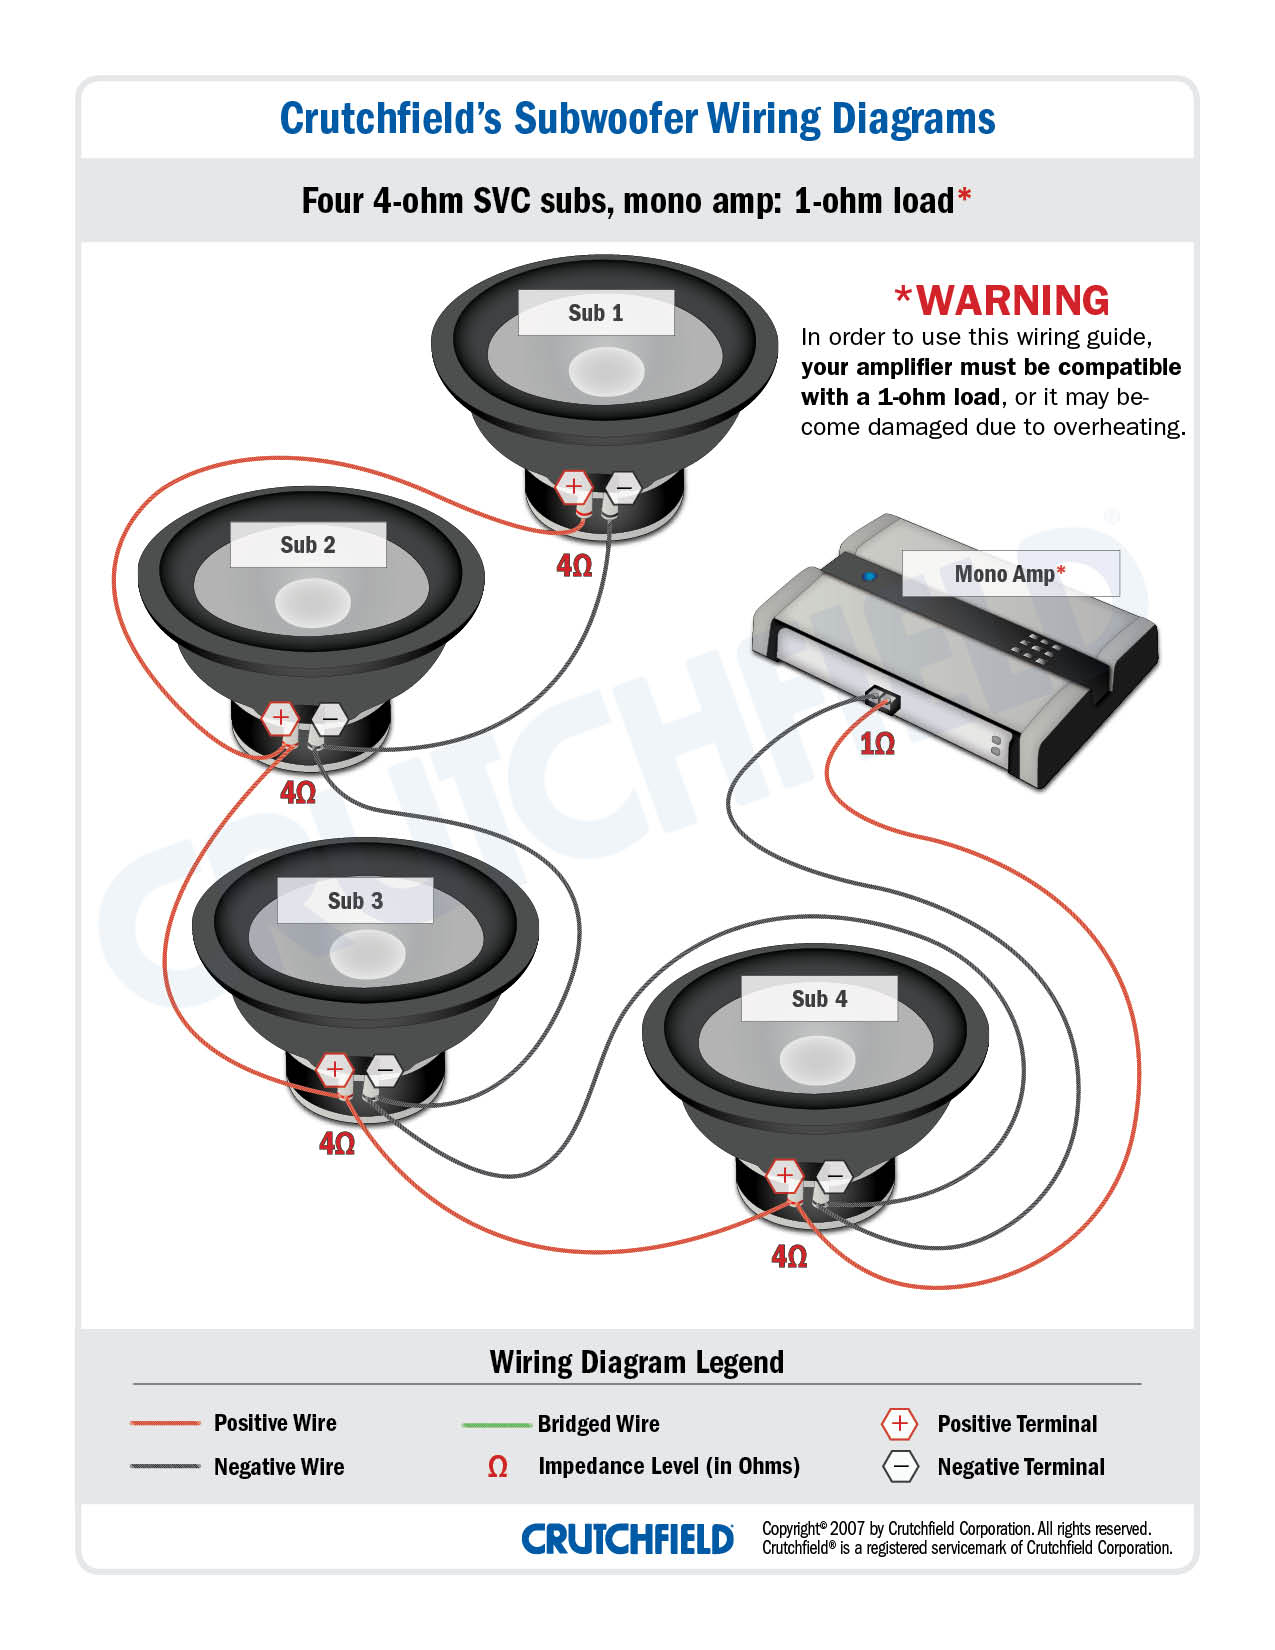 4 SVC 4 ohm mono low imp wiring subwoofers what's all this about ohms? crutchfield wiring diagrams at aneh.co